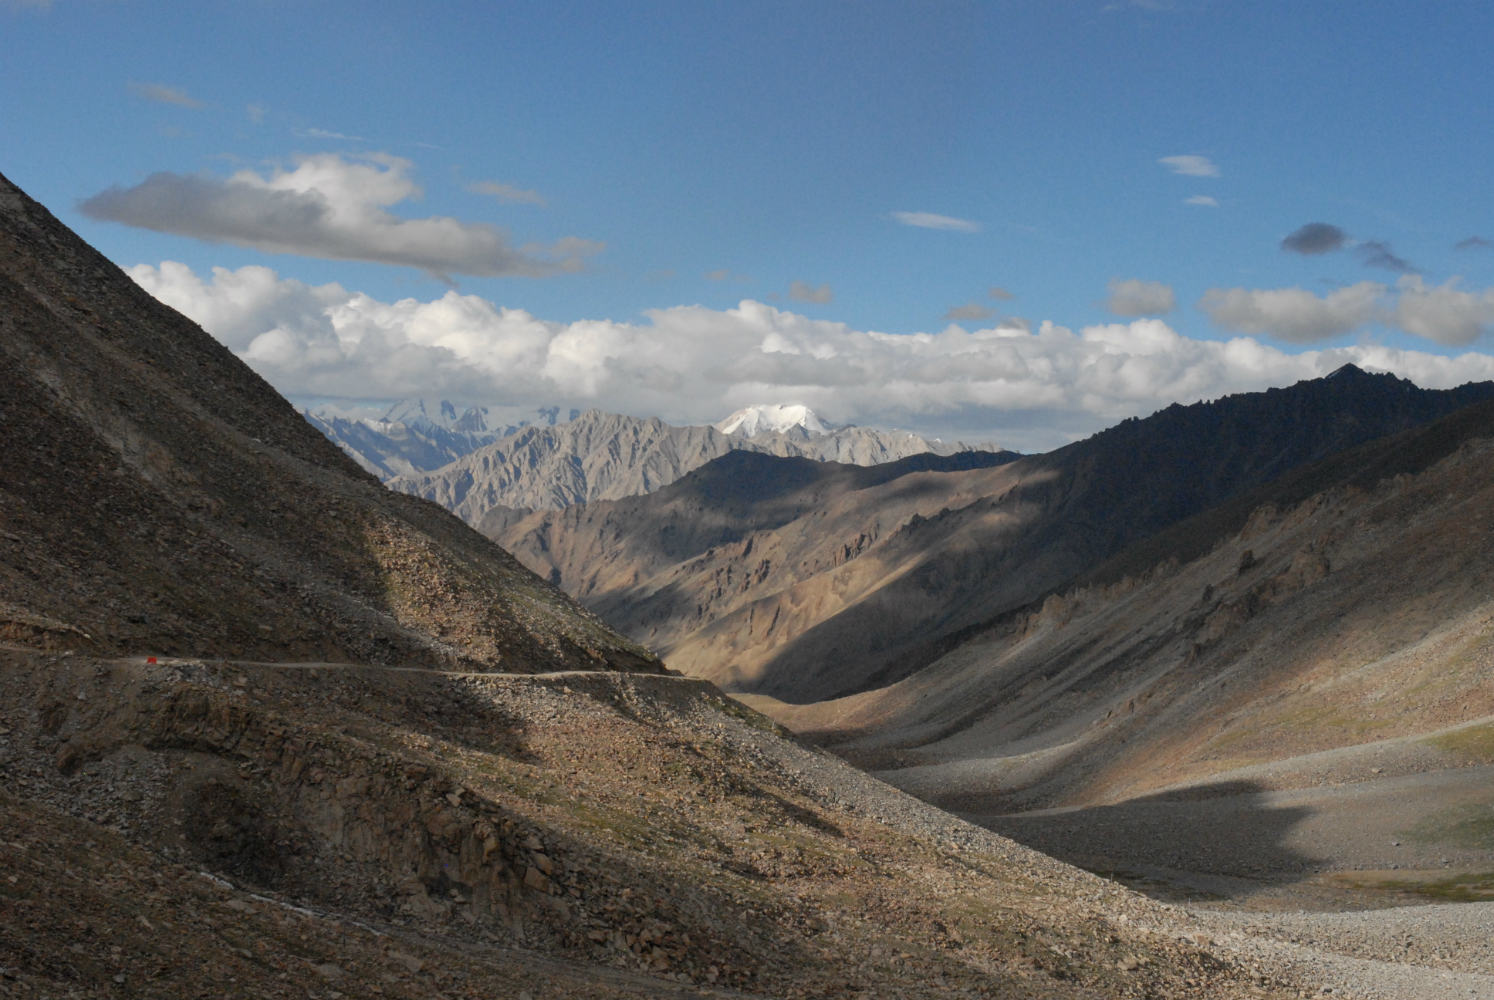 Stunning view of the Pamirs